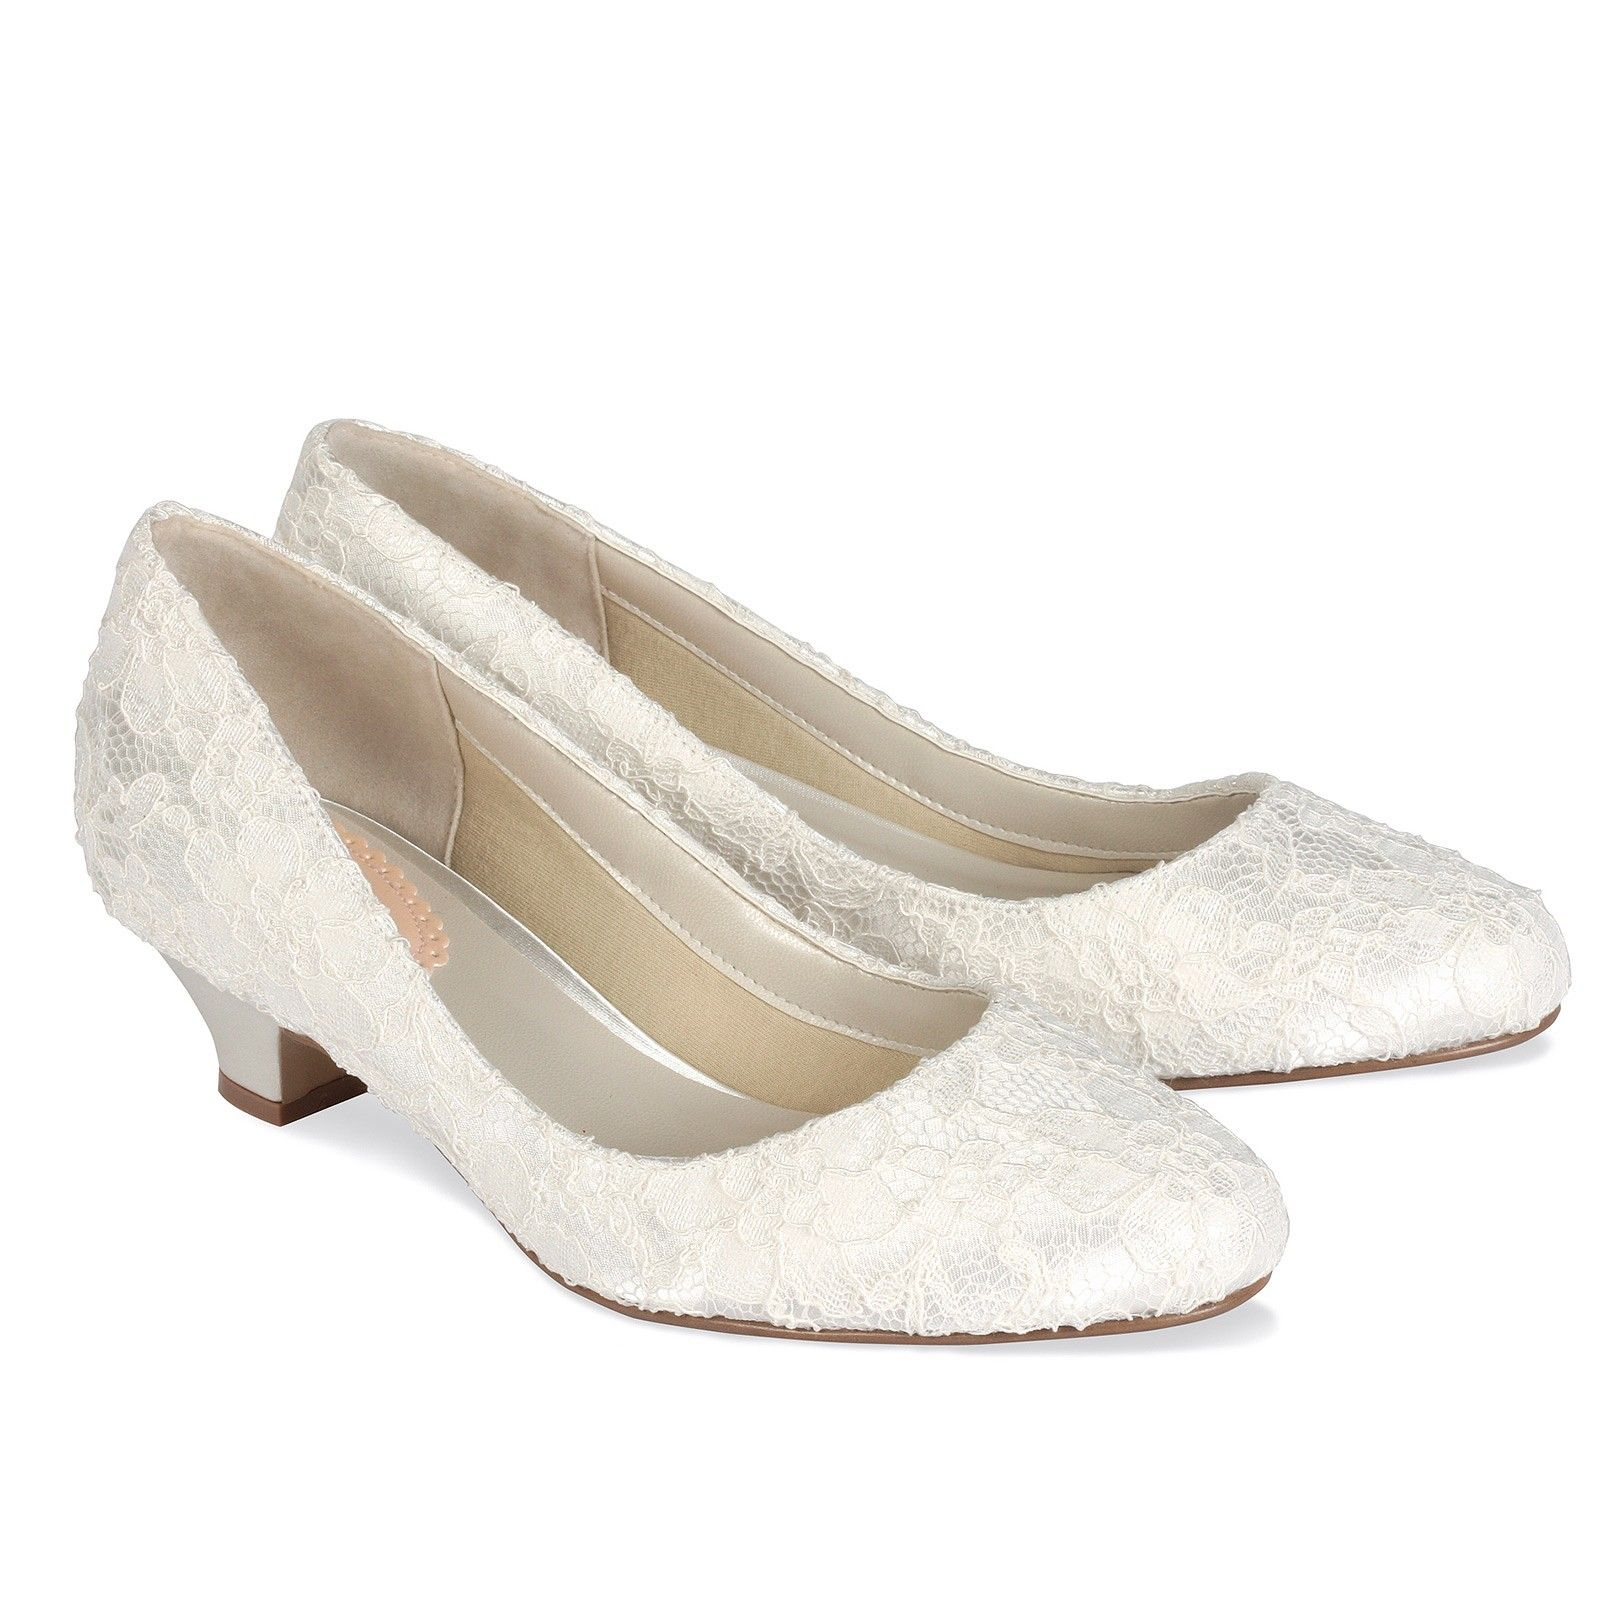 The Ivory Satin Lace Bon Is A Low Heel Round Toe Court